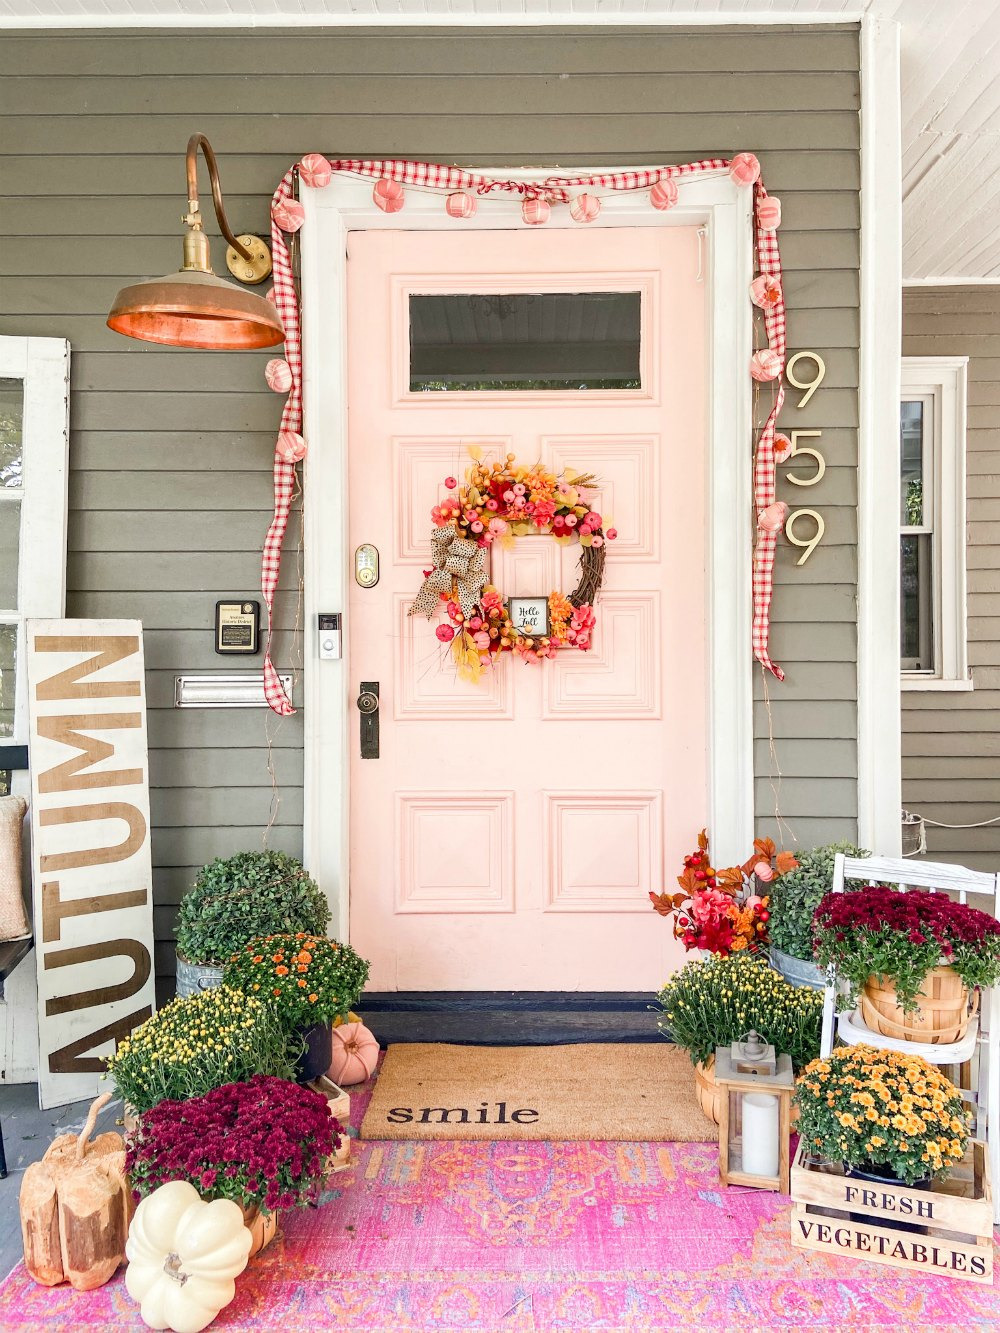 Fall Dollar Store Pumpkin Wreath. A fall wreath doesn't have to cost a lot or take a lot of time to make. Grab some dollar store pumpkins, blooms and get started!